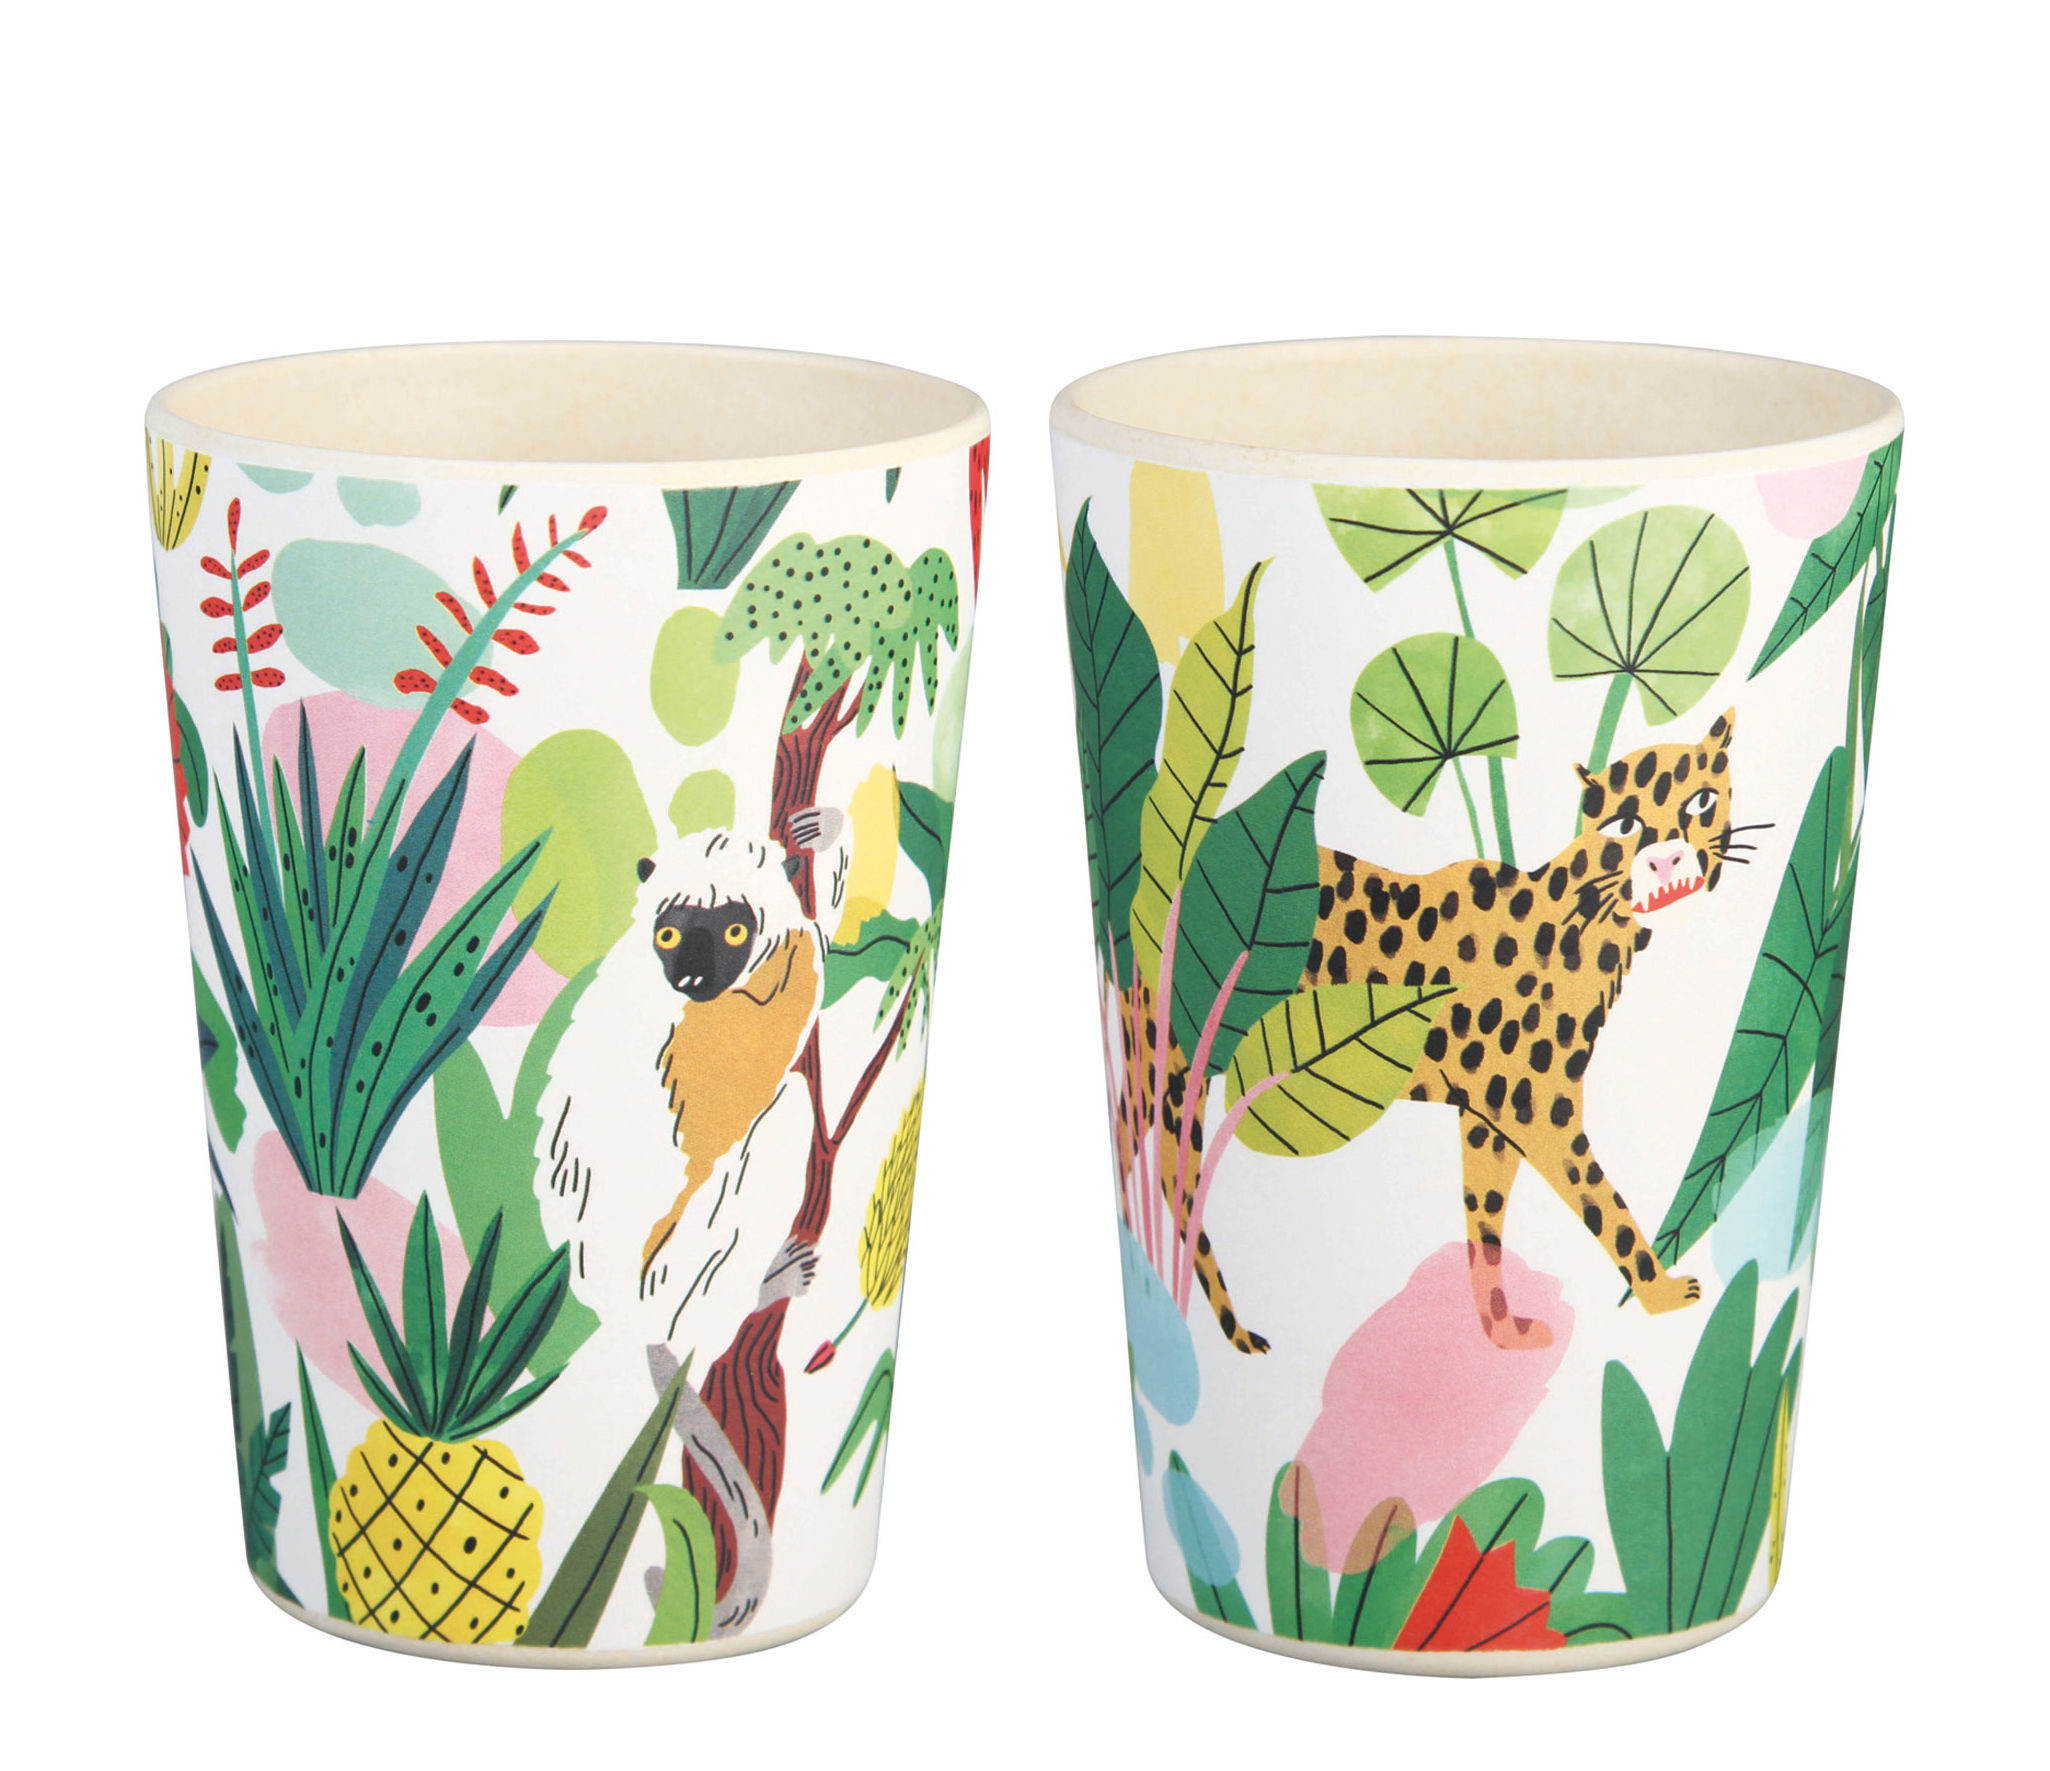 Tableware - Coffee Mugs & Tea Cups - Bodil Cup - / Set of 2 - Bamboo by & klevering - Tropical jungle - Bamboo fibre